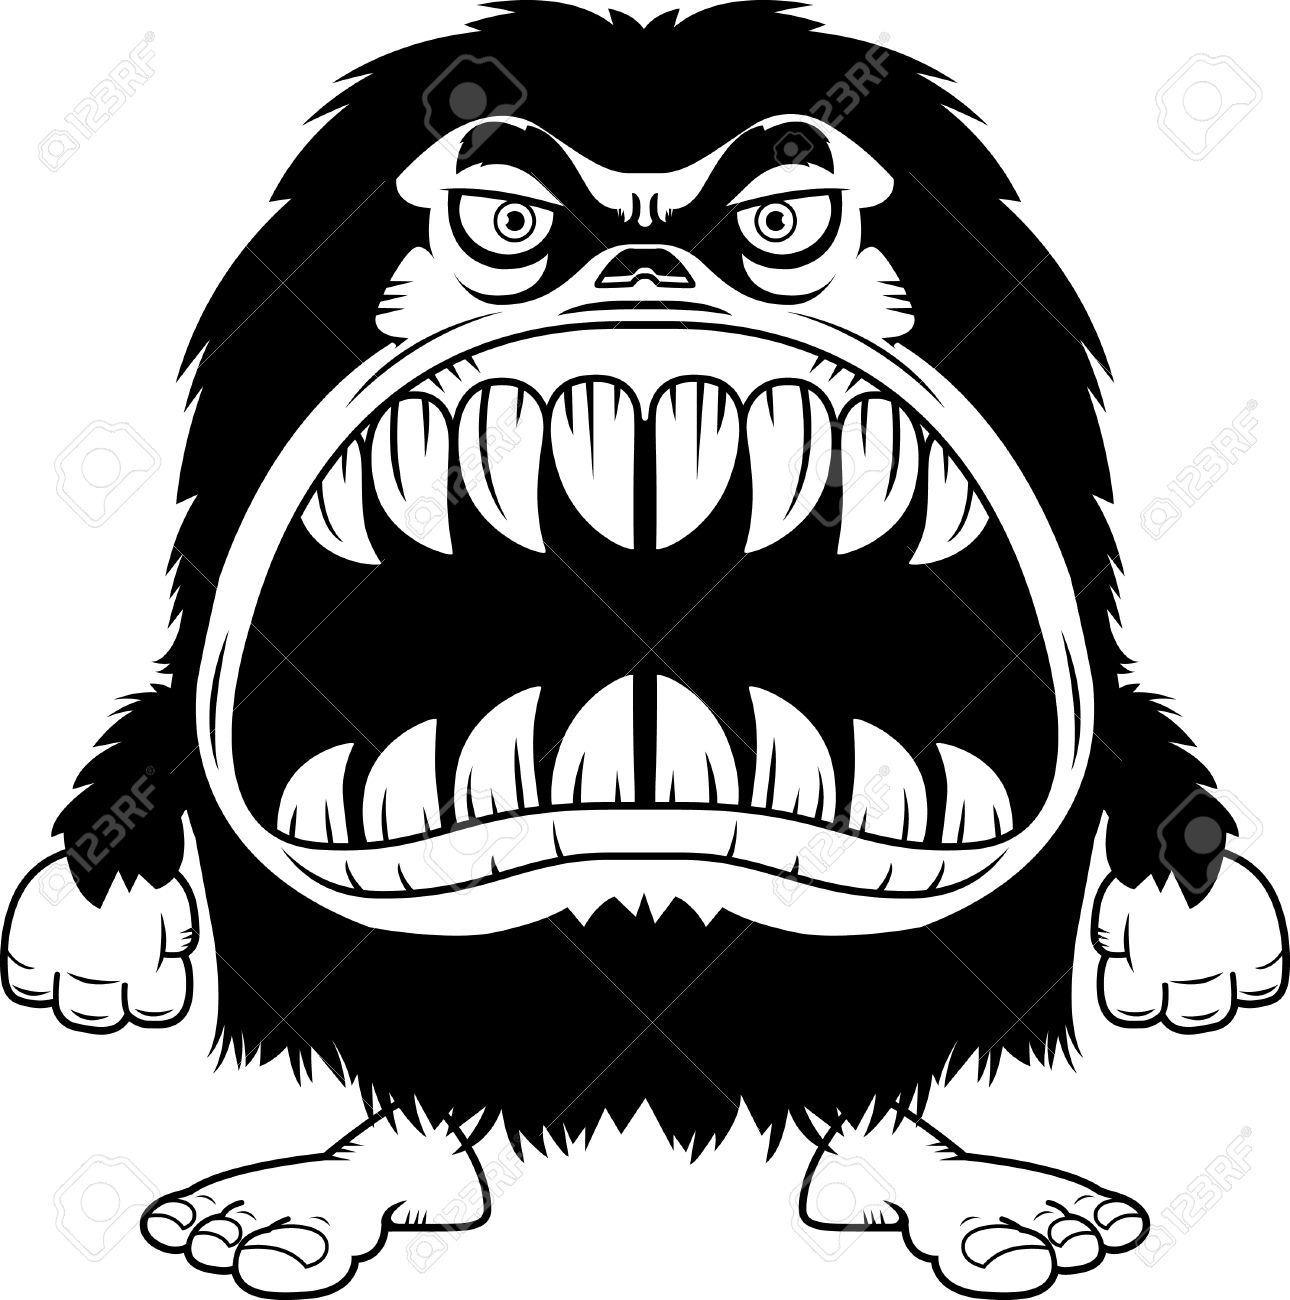 A Cartoon Illustration Of A Hairy Monster With A Big Mouth Full.